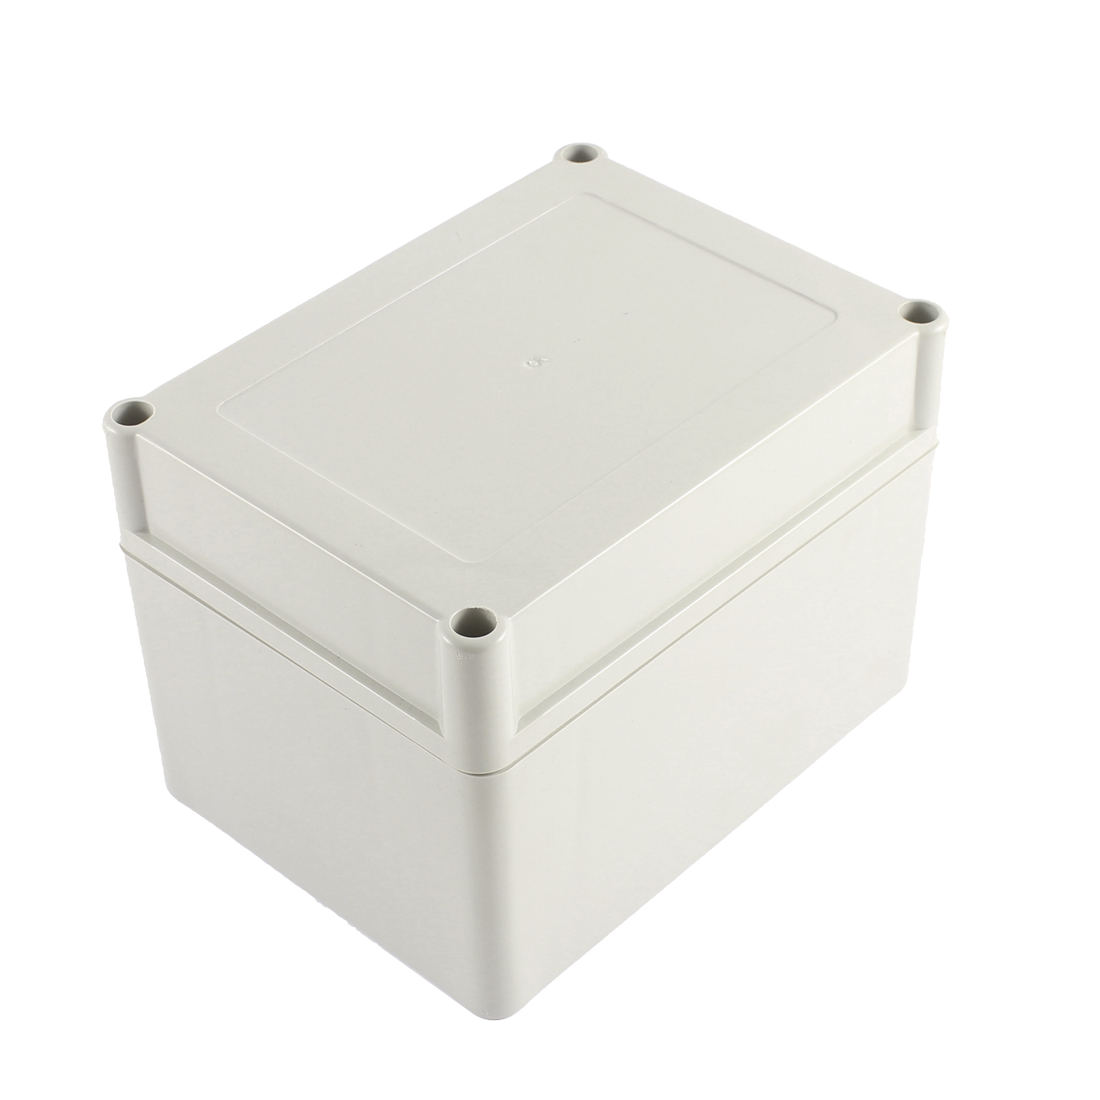 Plastic Electronic Project Junction Box Enclosure 134mm x 100mm x 103mm